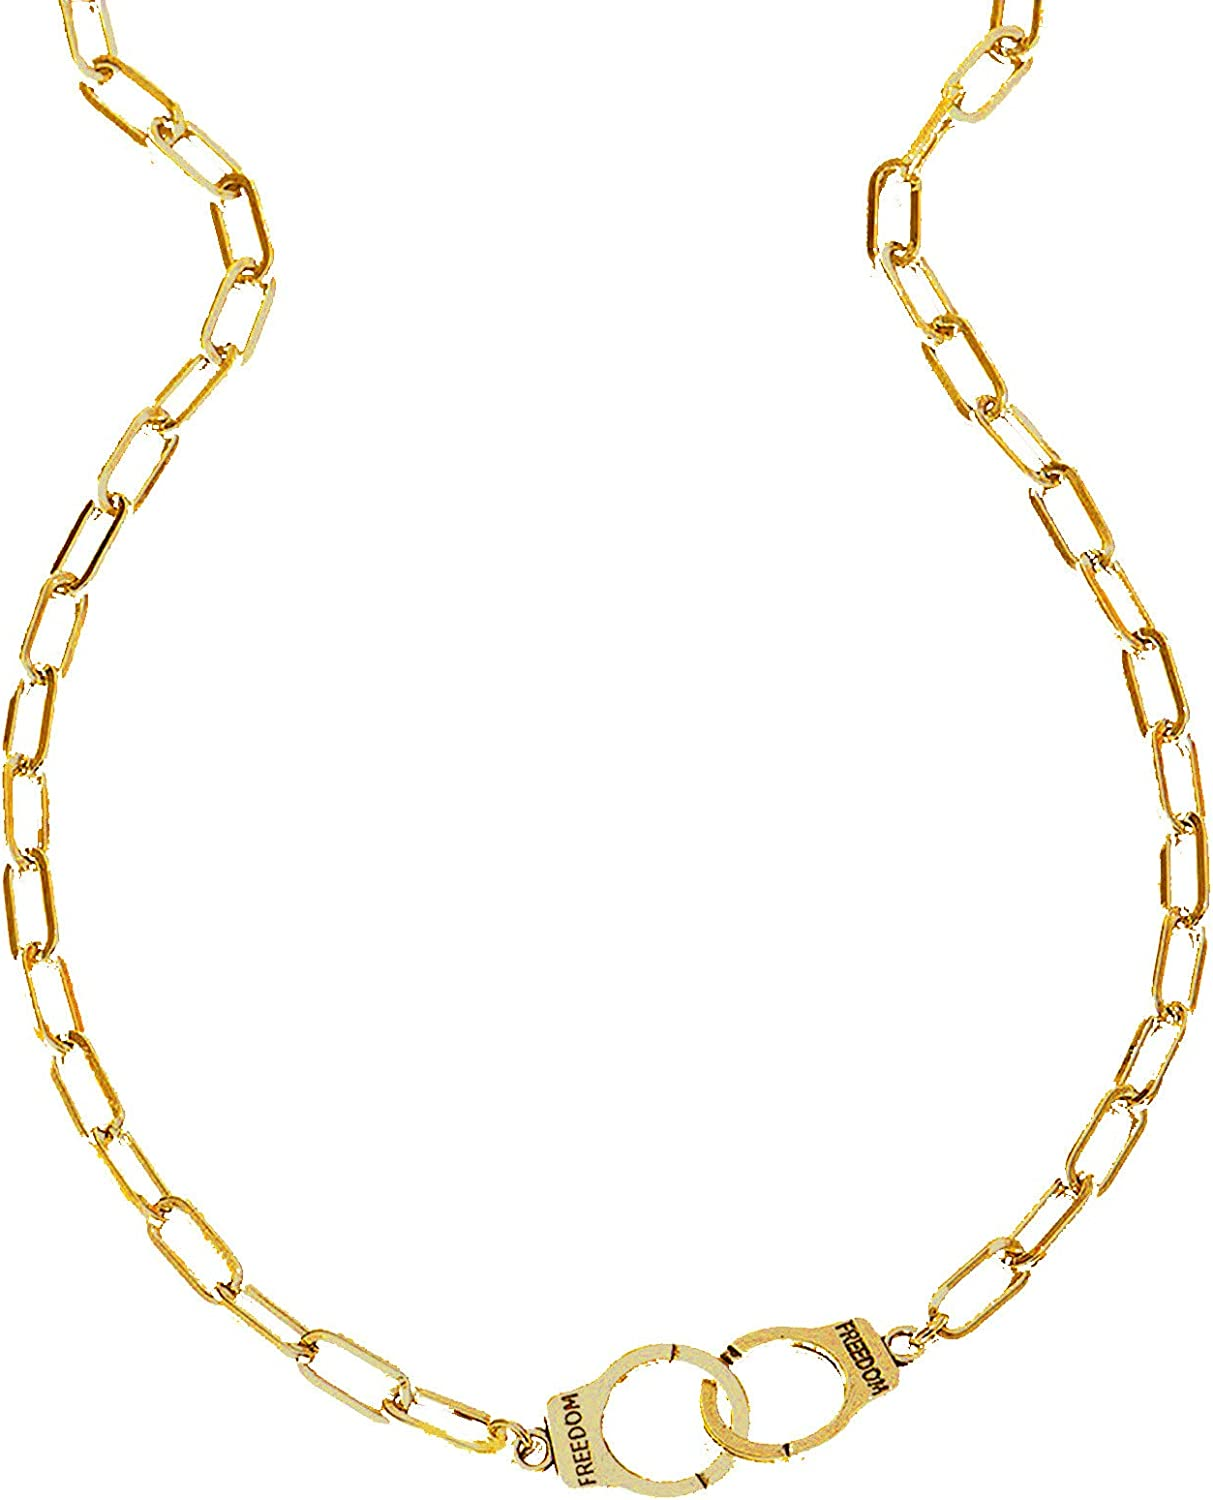 Fashion Creative Spring Summer Necklace Women Jewerly Necklaces Handcuffs O Chain Unique Design Stainless Steel Infinity Interlocking Circle Collar Statement Necklace for Women